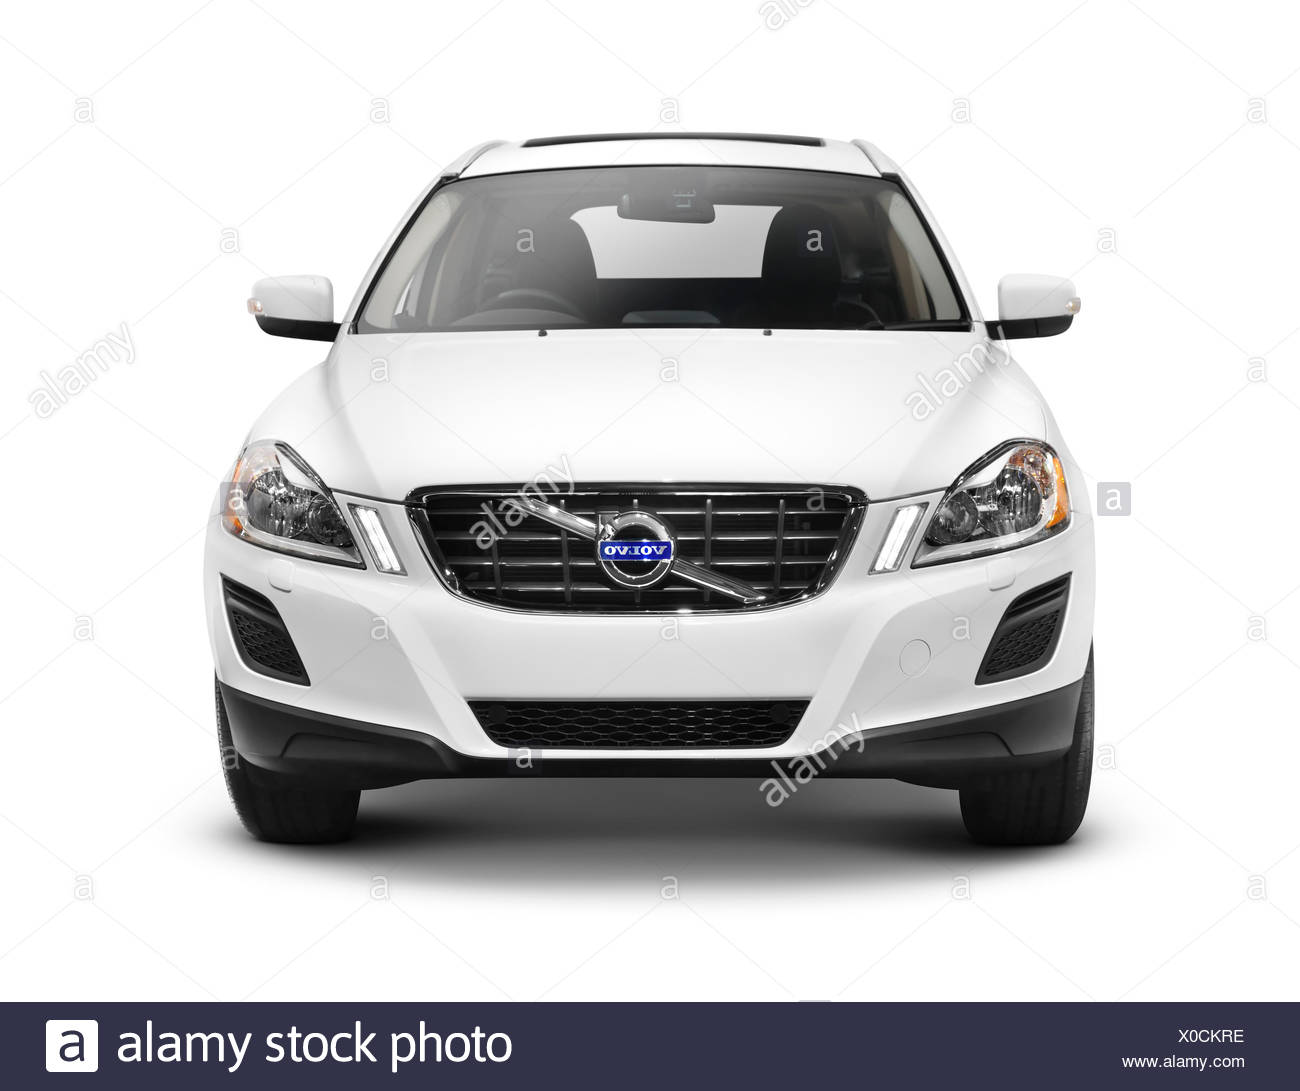 2010 Volvo S80 For Sale: Xc60 Stock Photos & Xc60 Stock Images